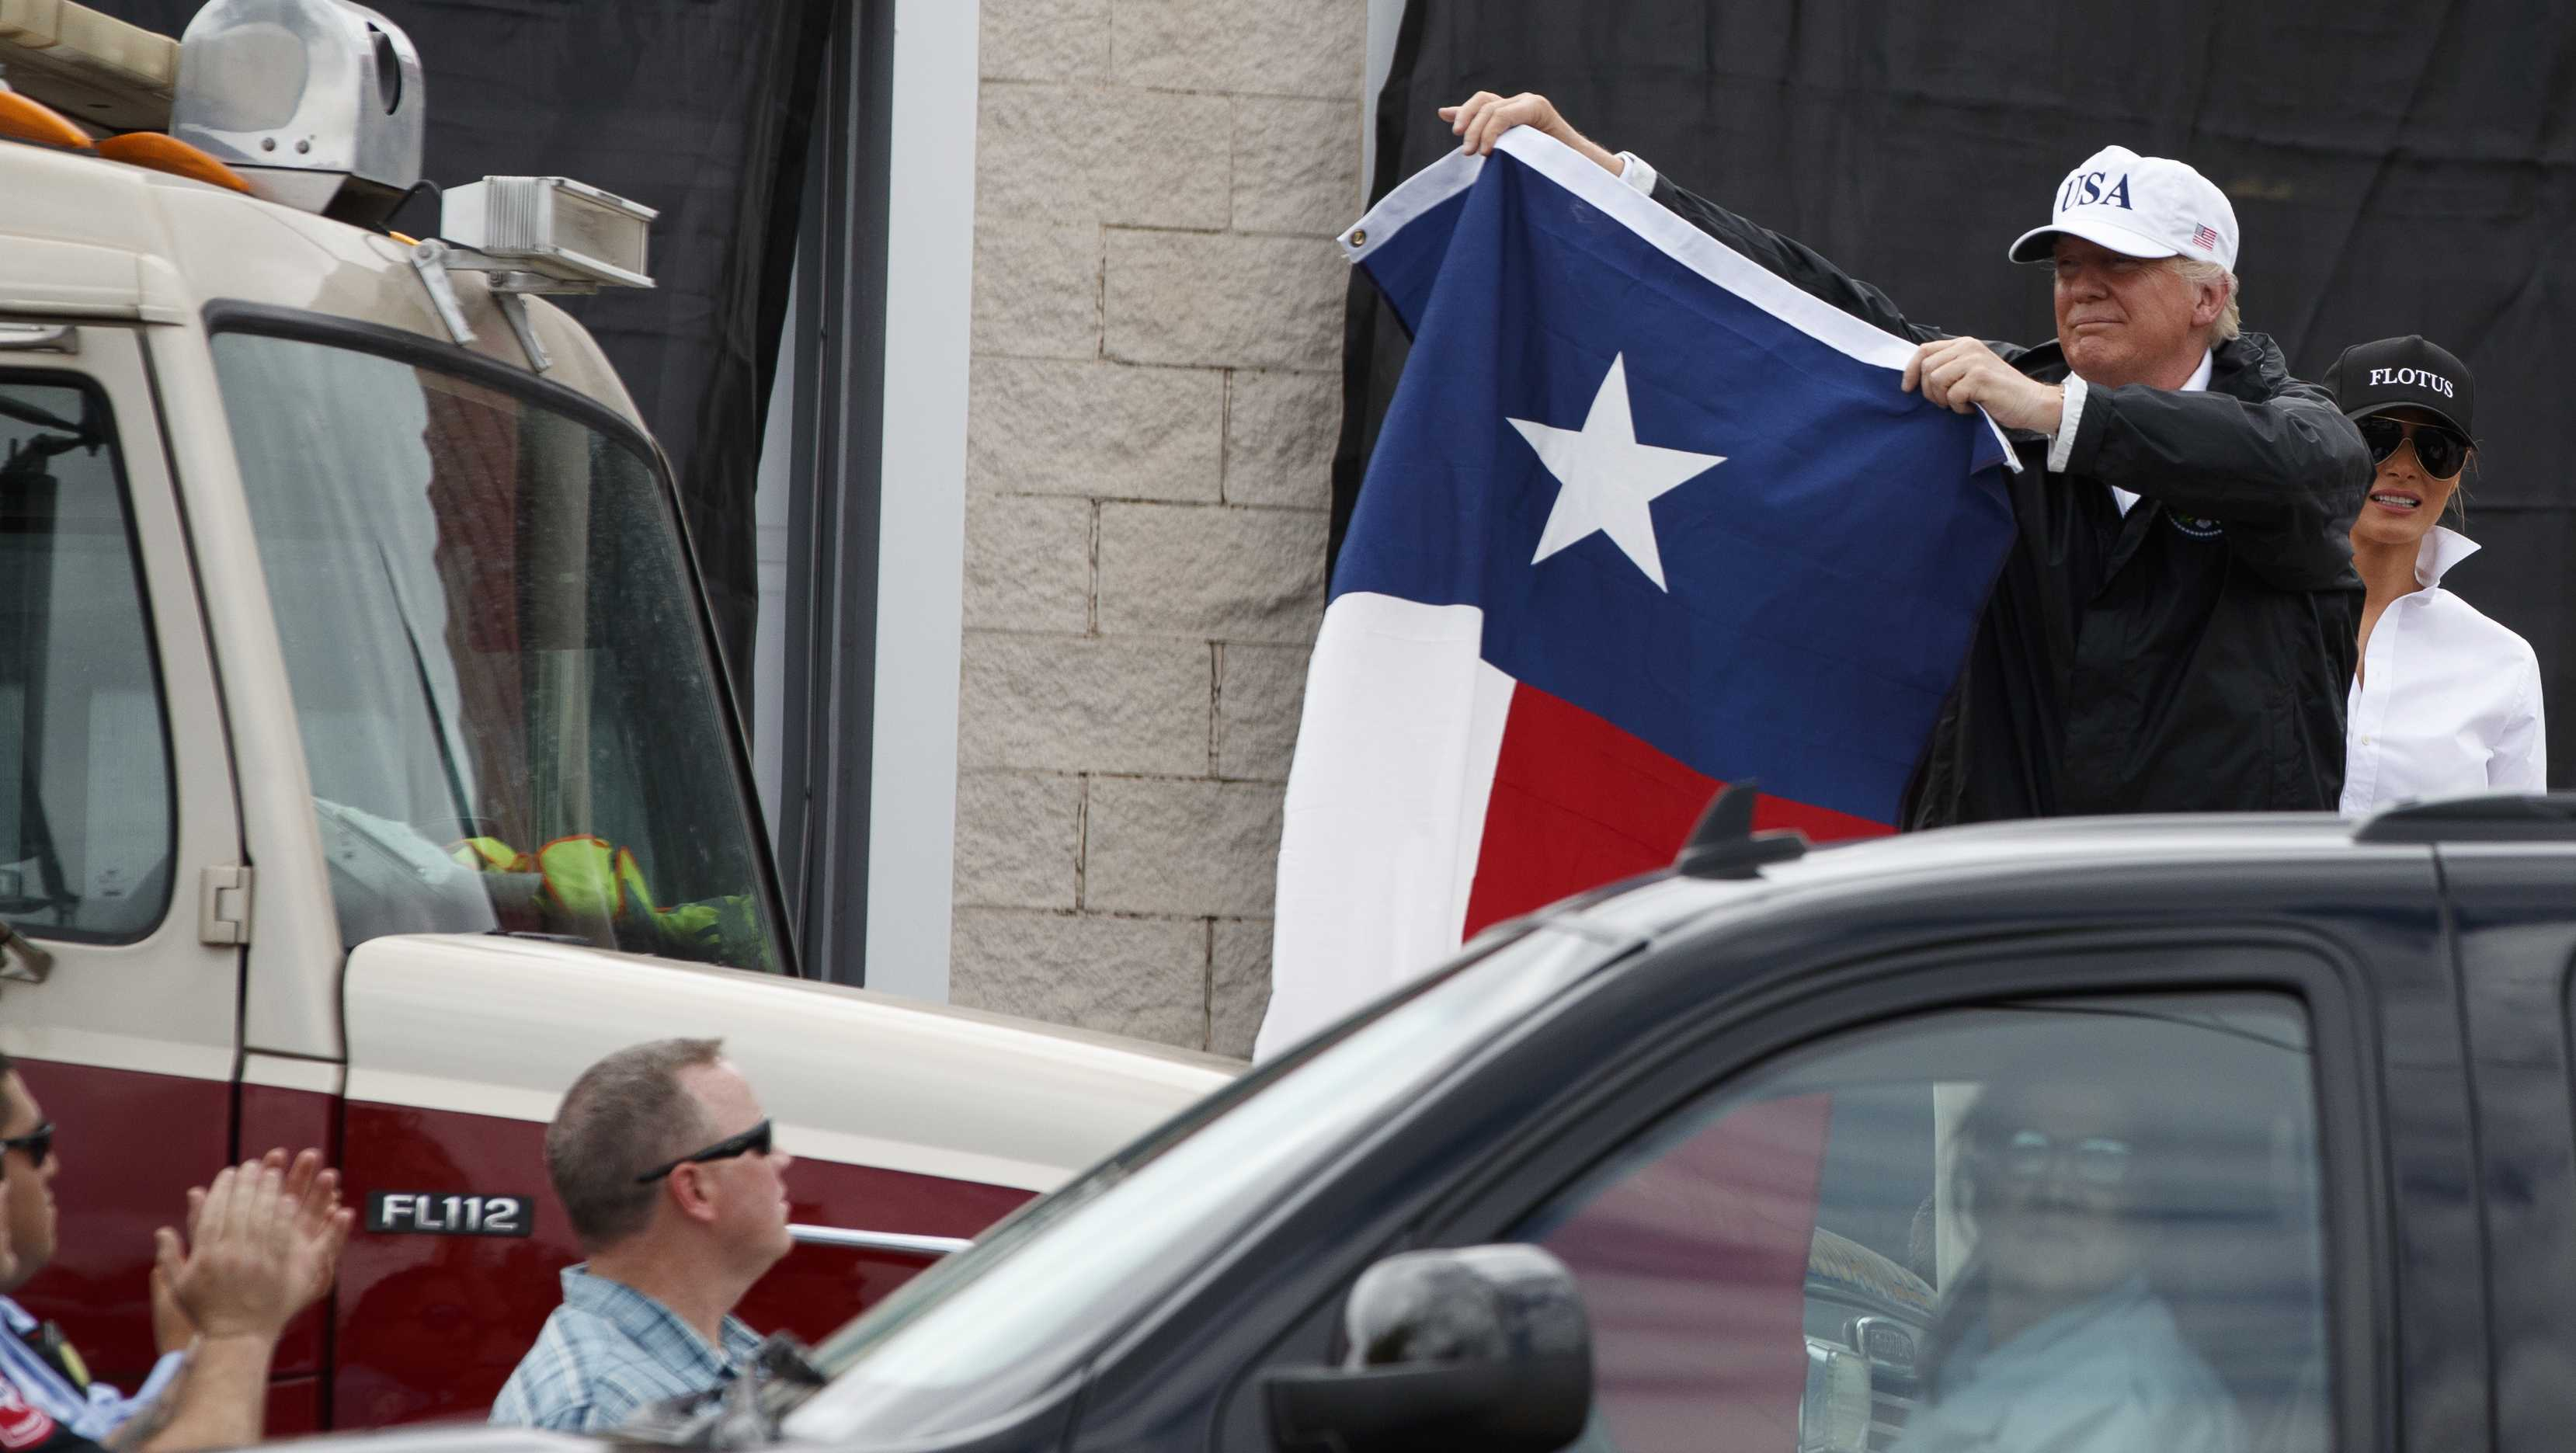 President Donald Trump, accompanied by first lady Melania Trump, holds up a Texas flag after speaking with supporters outside Firehouse 5 Corpus Christi, Texas, Tuesday, Aug. 29, 2017, following a briefing on Harvey relief efforts.